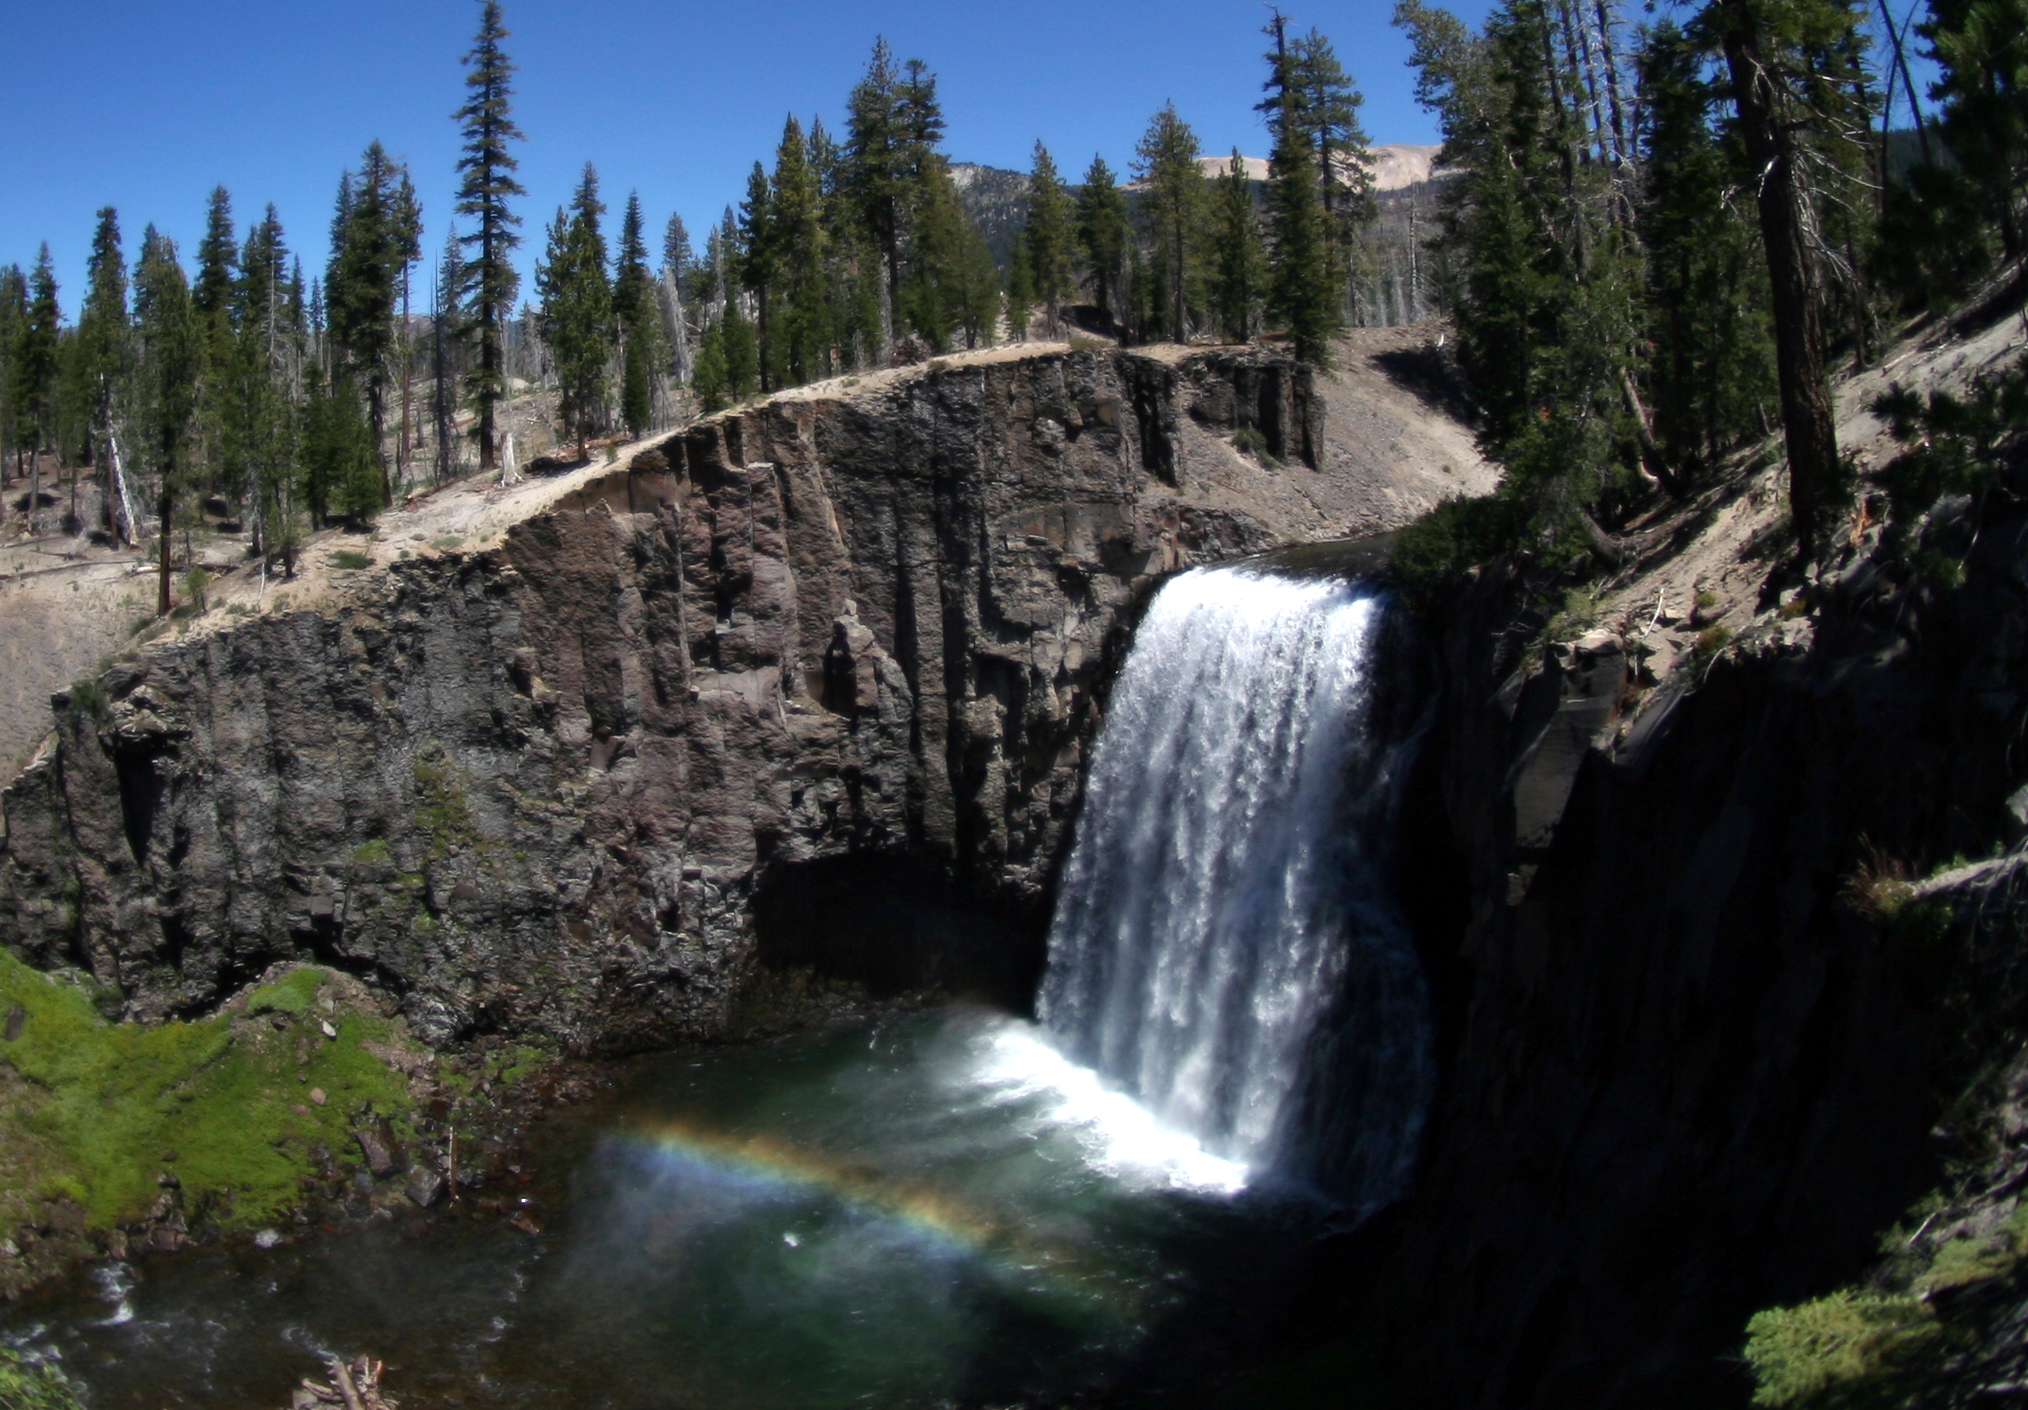 Rainbow fall at Devils Postpile National Monument. Credit: Wikimedia